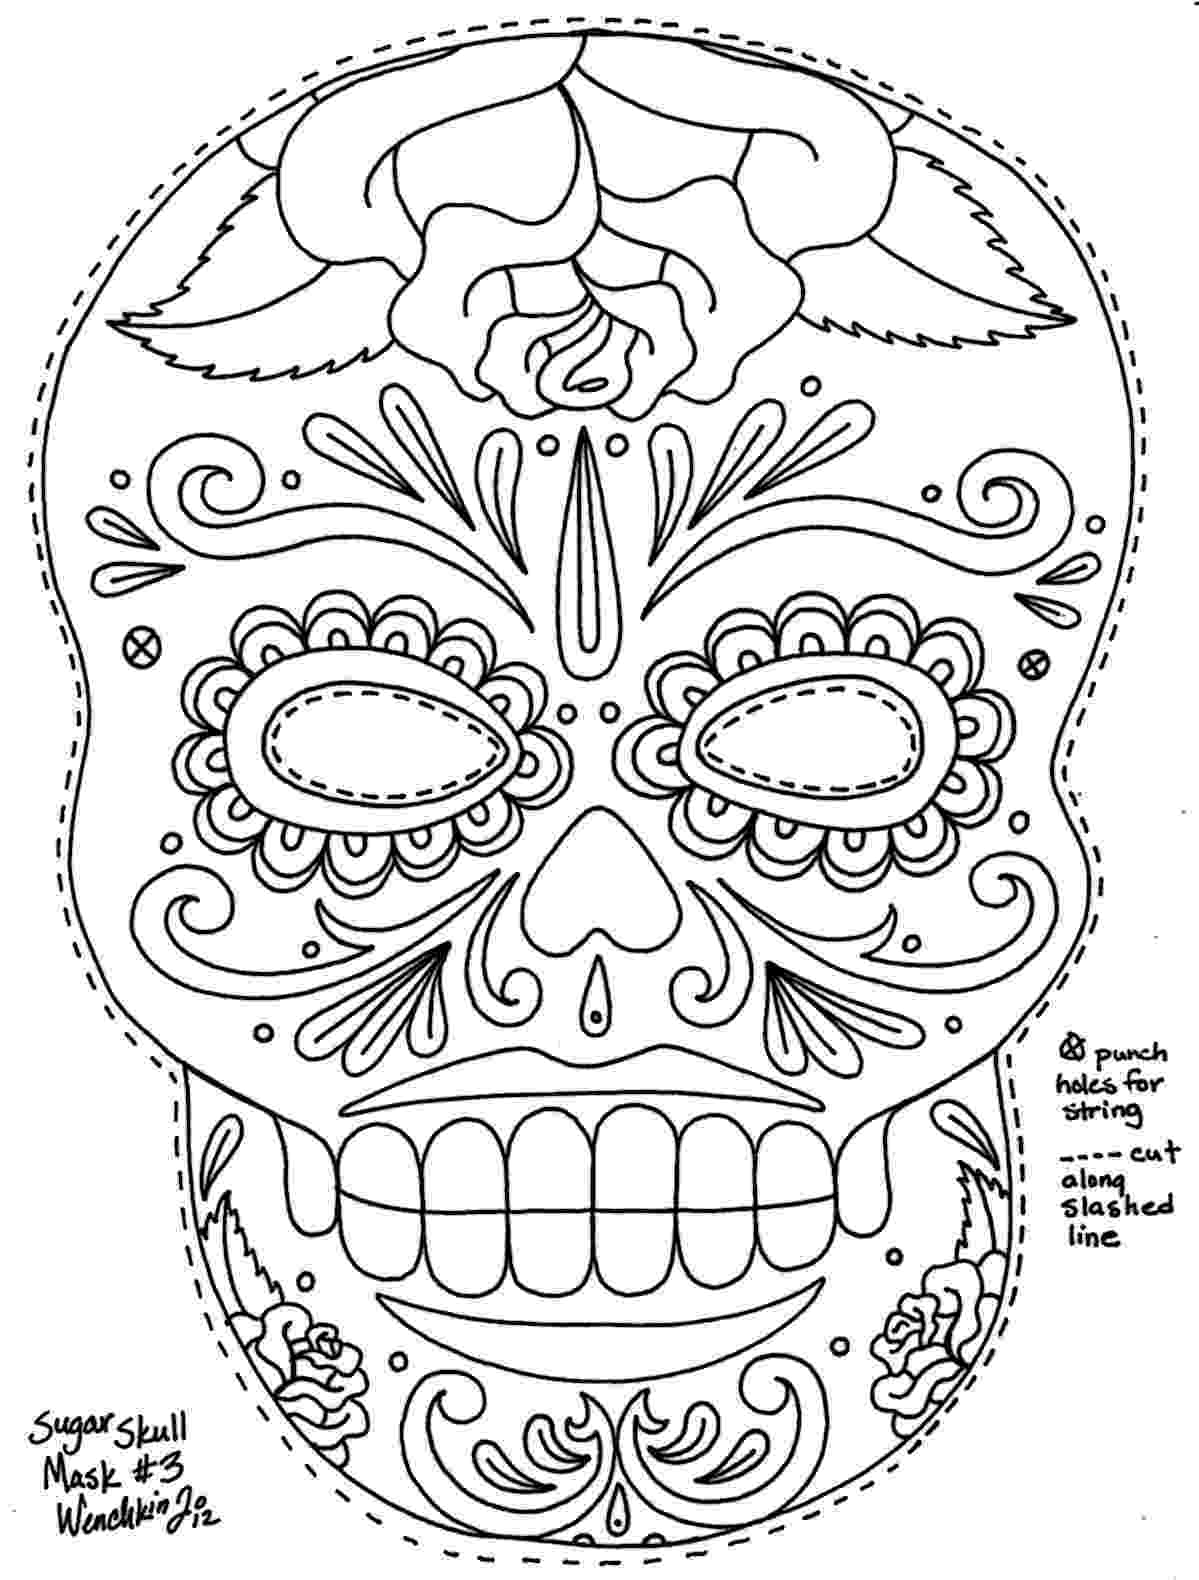 skulls coloring pages free printable skull coloring pages for kids coloring pages skulls 1 1